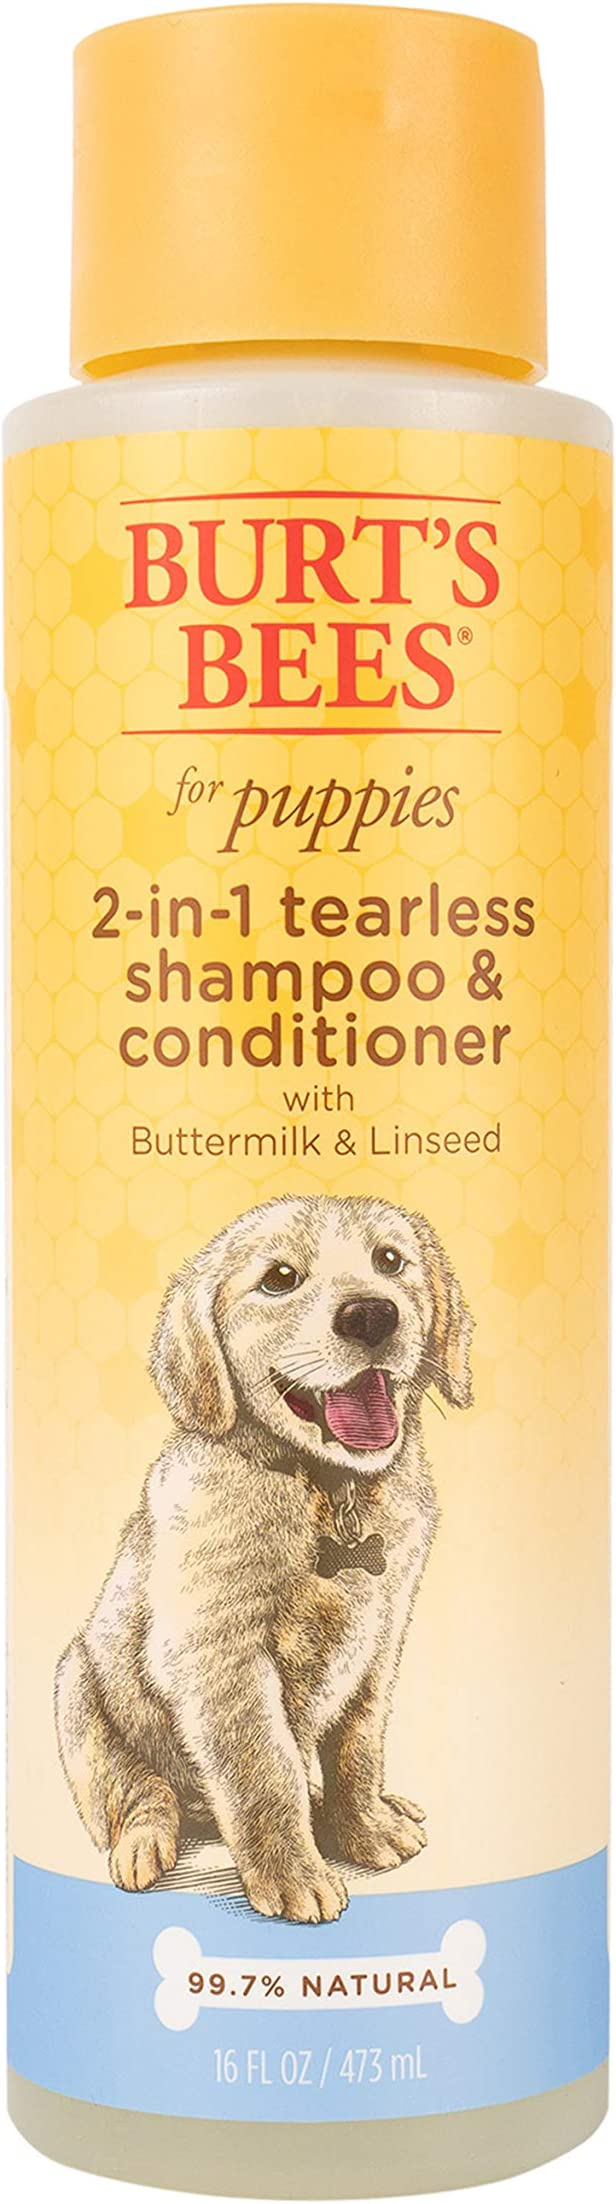 Burts Bees Puppy Tearless 2-in-1 Shampoo – Best Coat Cleansing Shampoo for Puppies